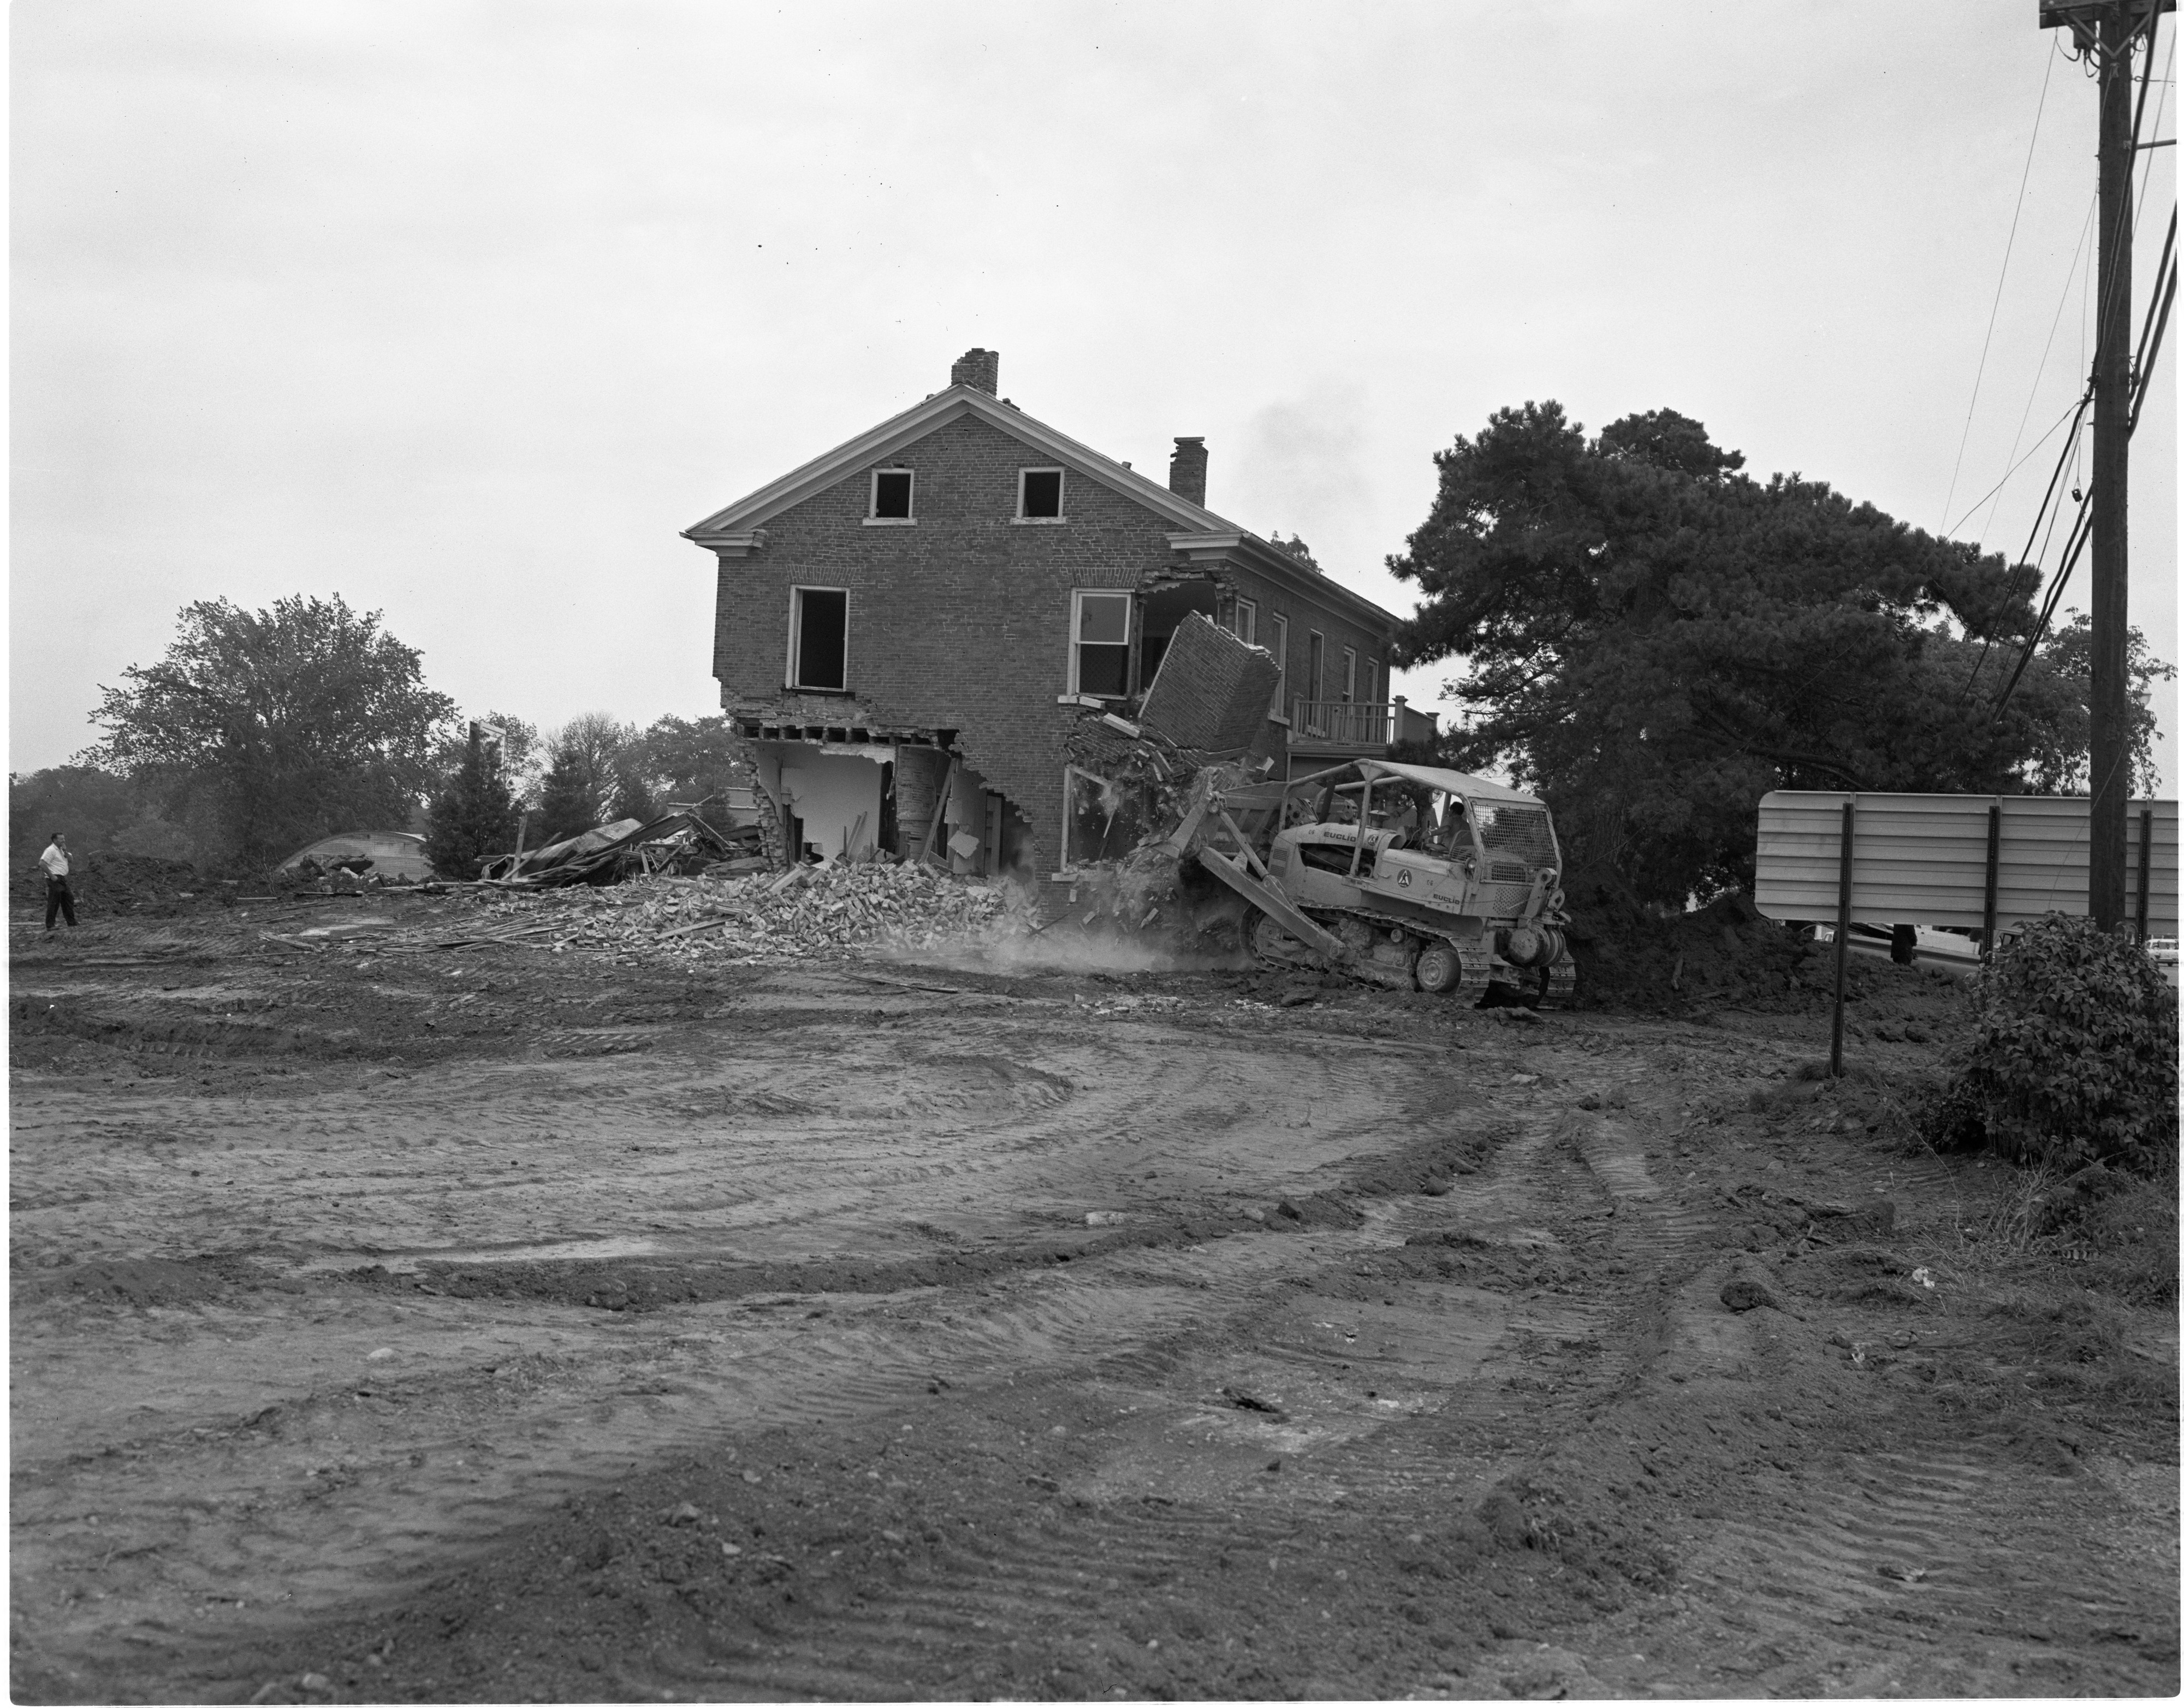 120-Year-Old Home Demolished To Make Room For Maple Village Shopping Center, September 1965 image